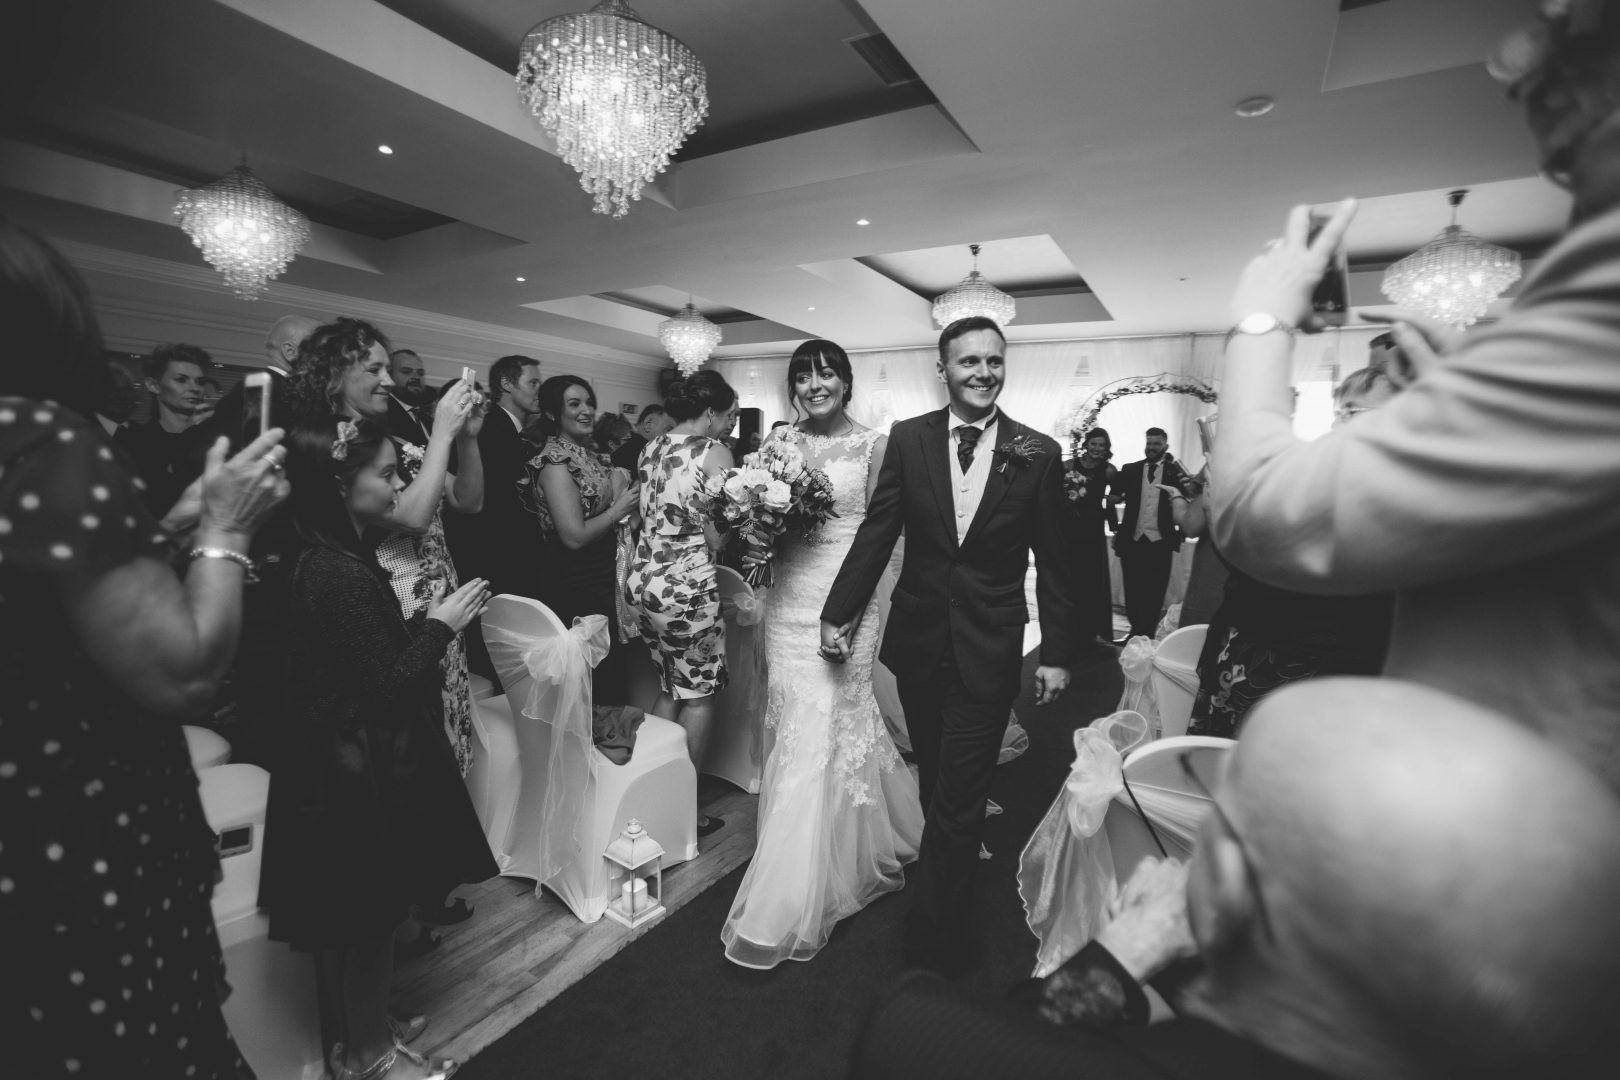 SARAH_GRAY_PHOTOGRAPHY_NORTHERN_IRELAND_BELFAST_WEDDING_40_5